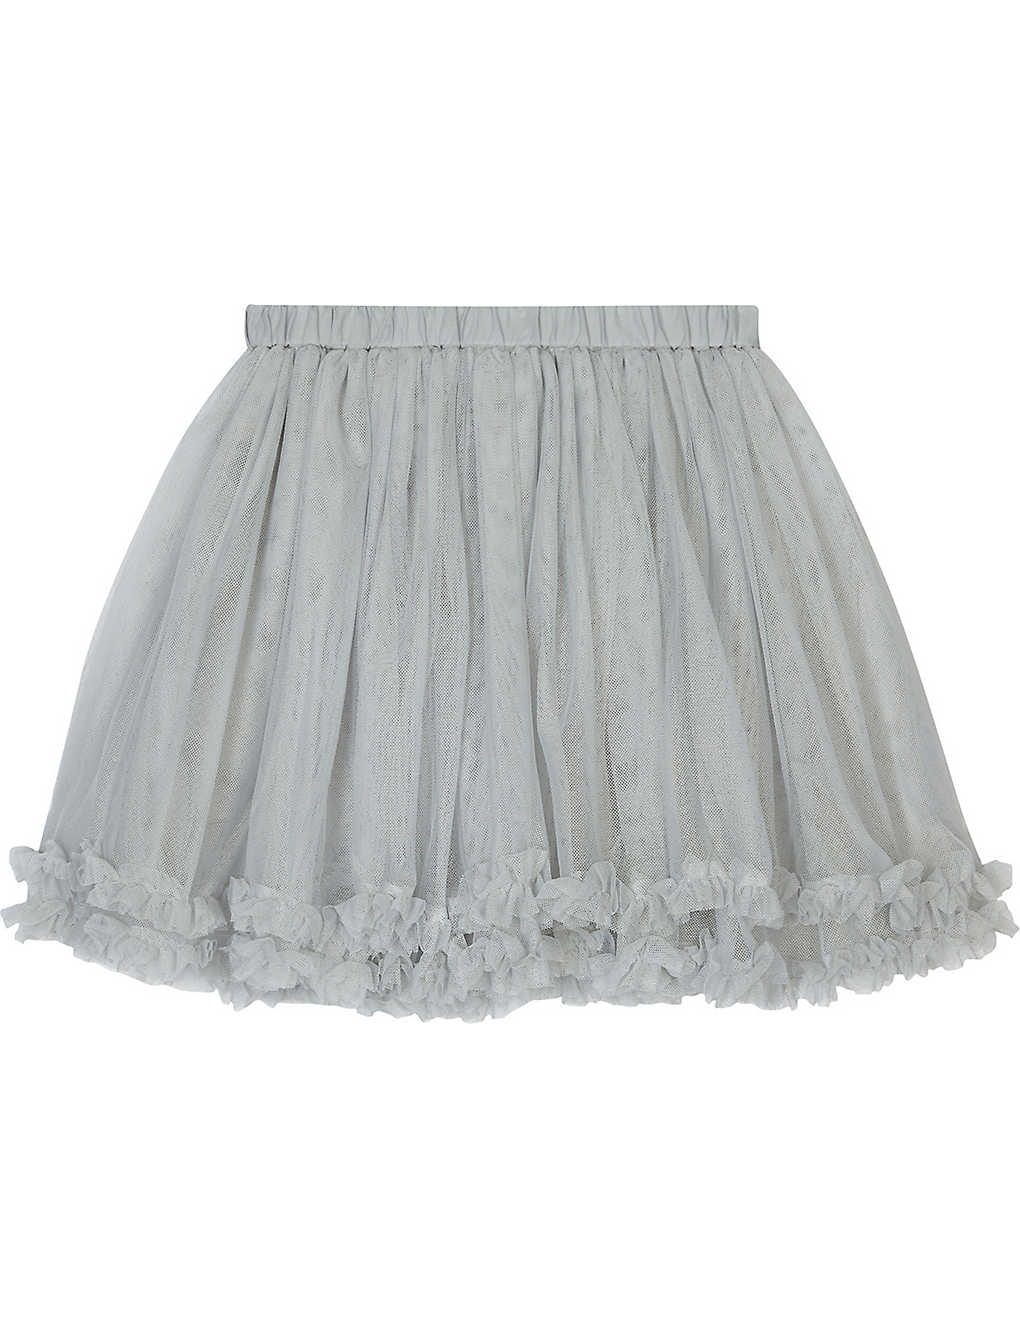 65e22675e THE LITTLE WHITE COMPANY - Frilled tulle tutu skirt 1-6 years ...